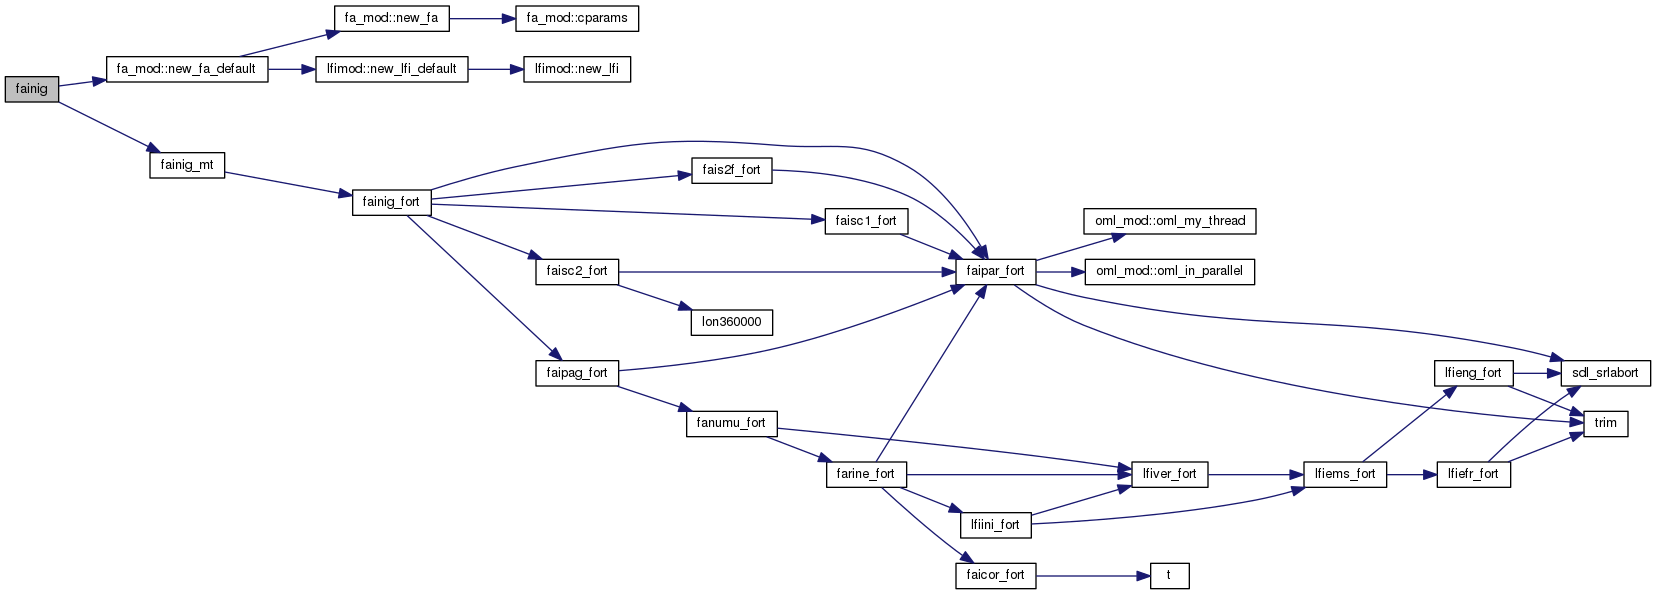 Surfex V81 Git2 Src Lib Xrd44 Fa Fainigf90 File Reference Basic Mobile Originating Call Diagram Here Is The Graph For This Function